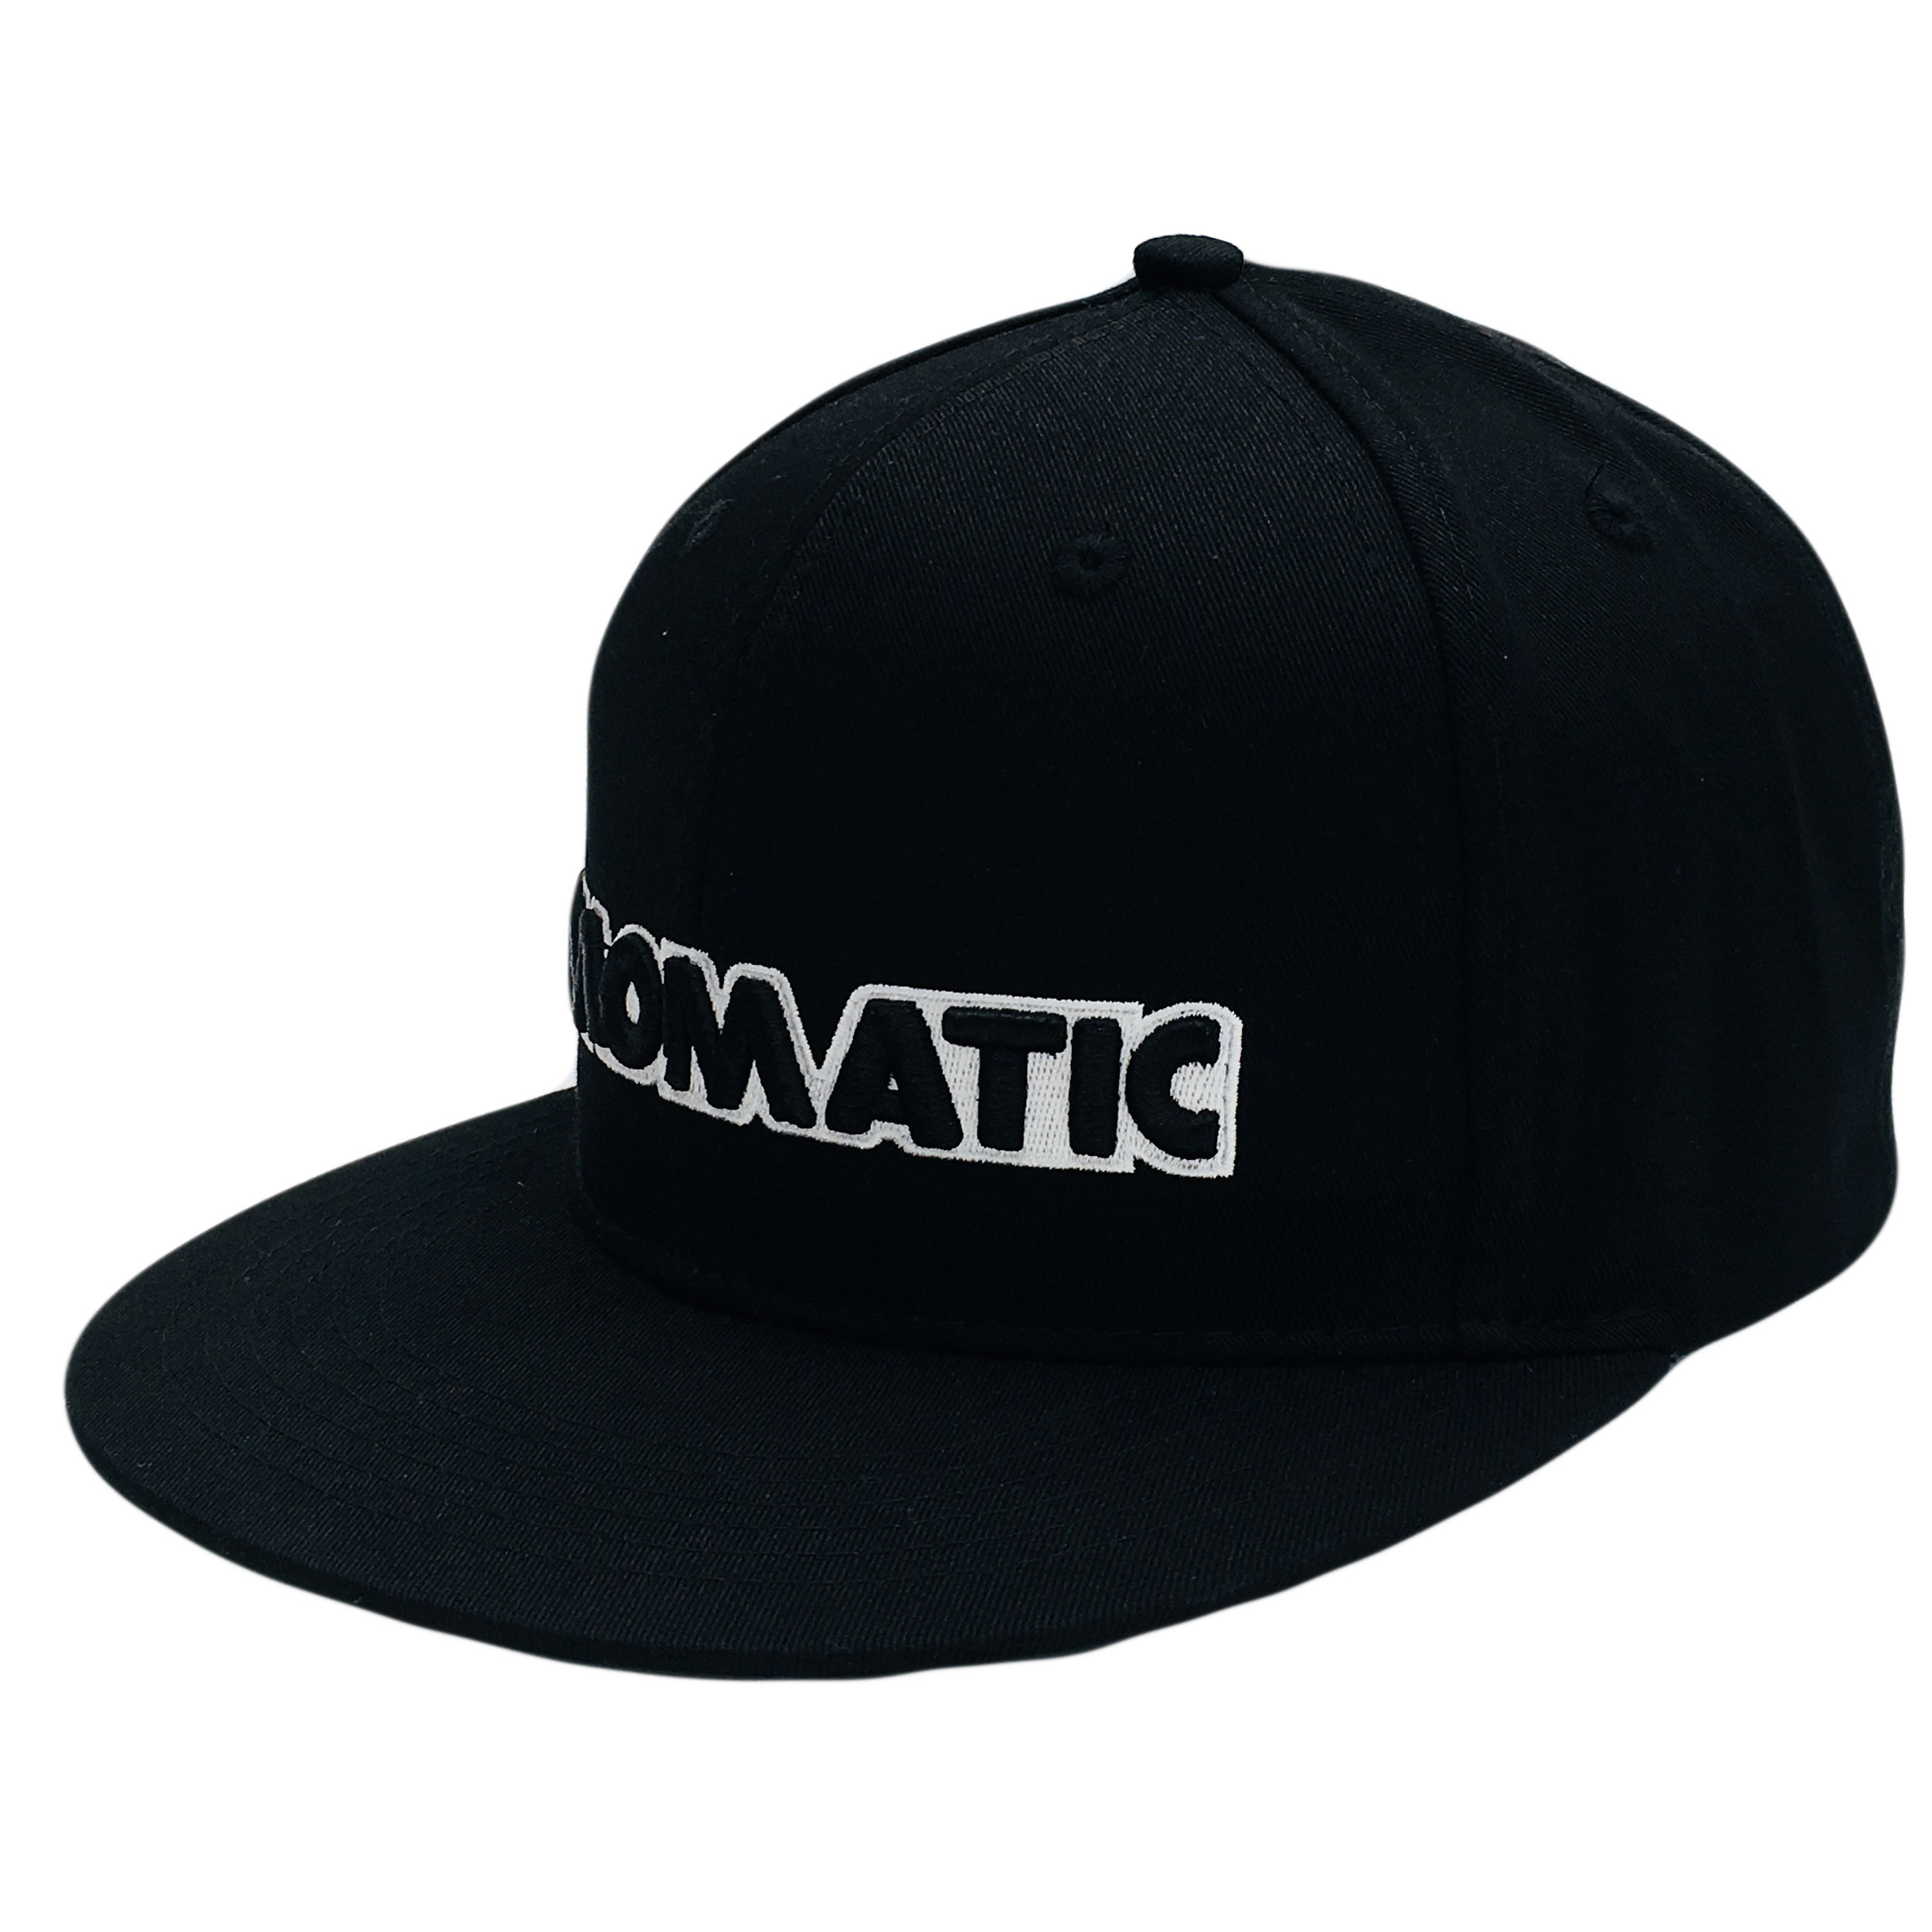 Copy of Copy of Structured Crown 3D Embroidery Snapback